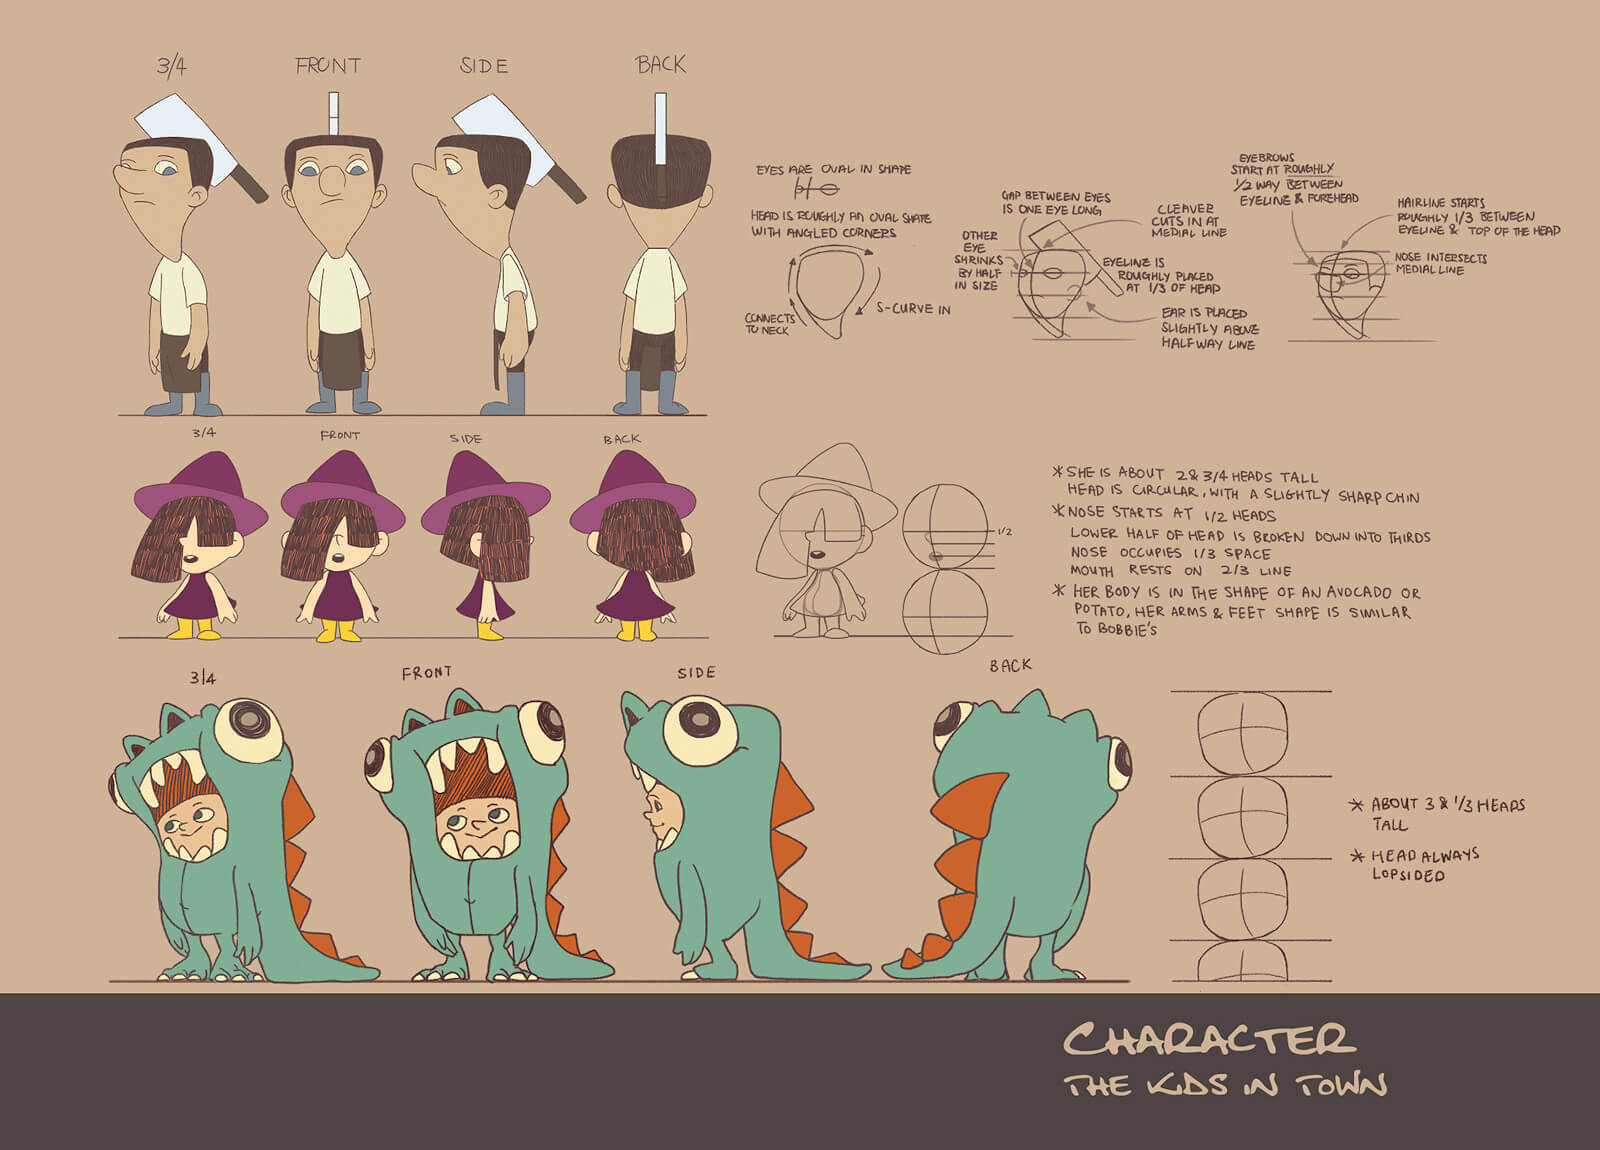 Character art for kids in trick-or-treat costumes